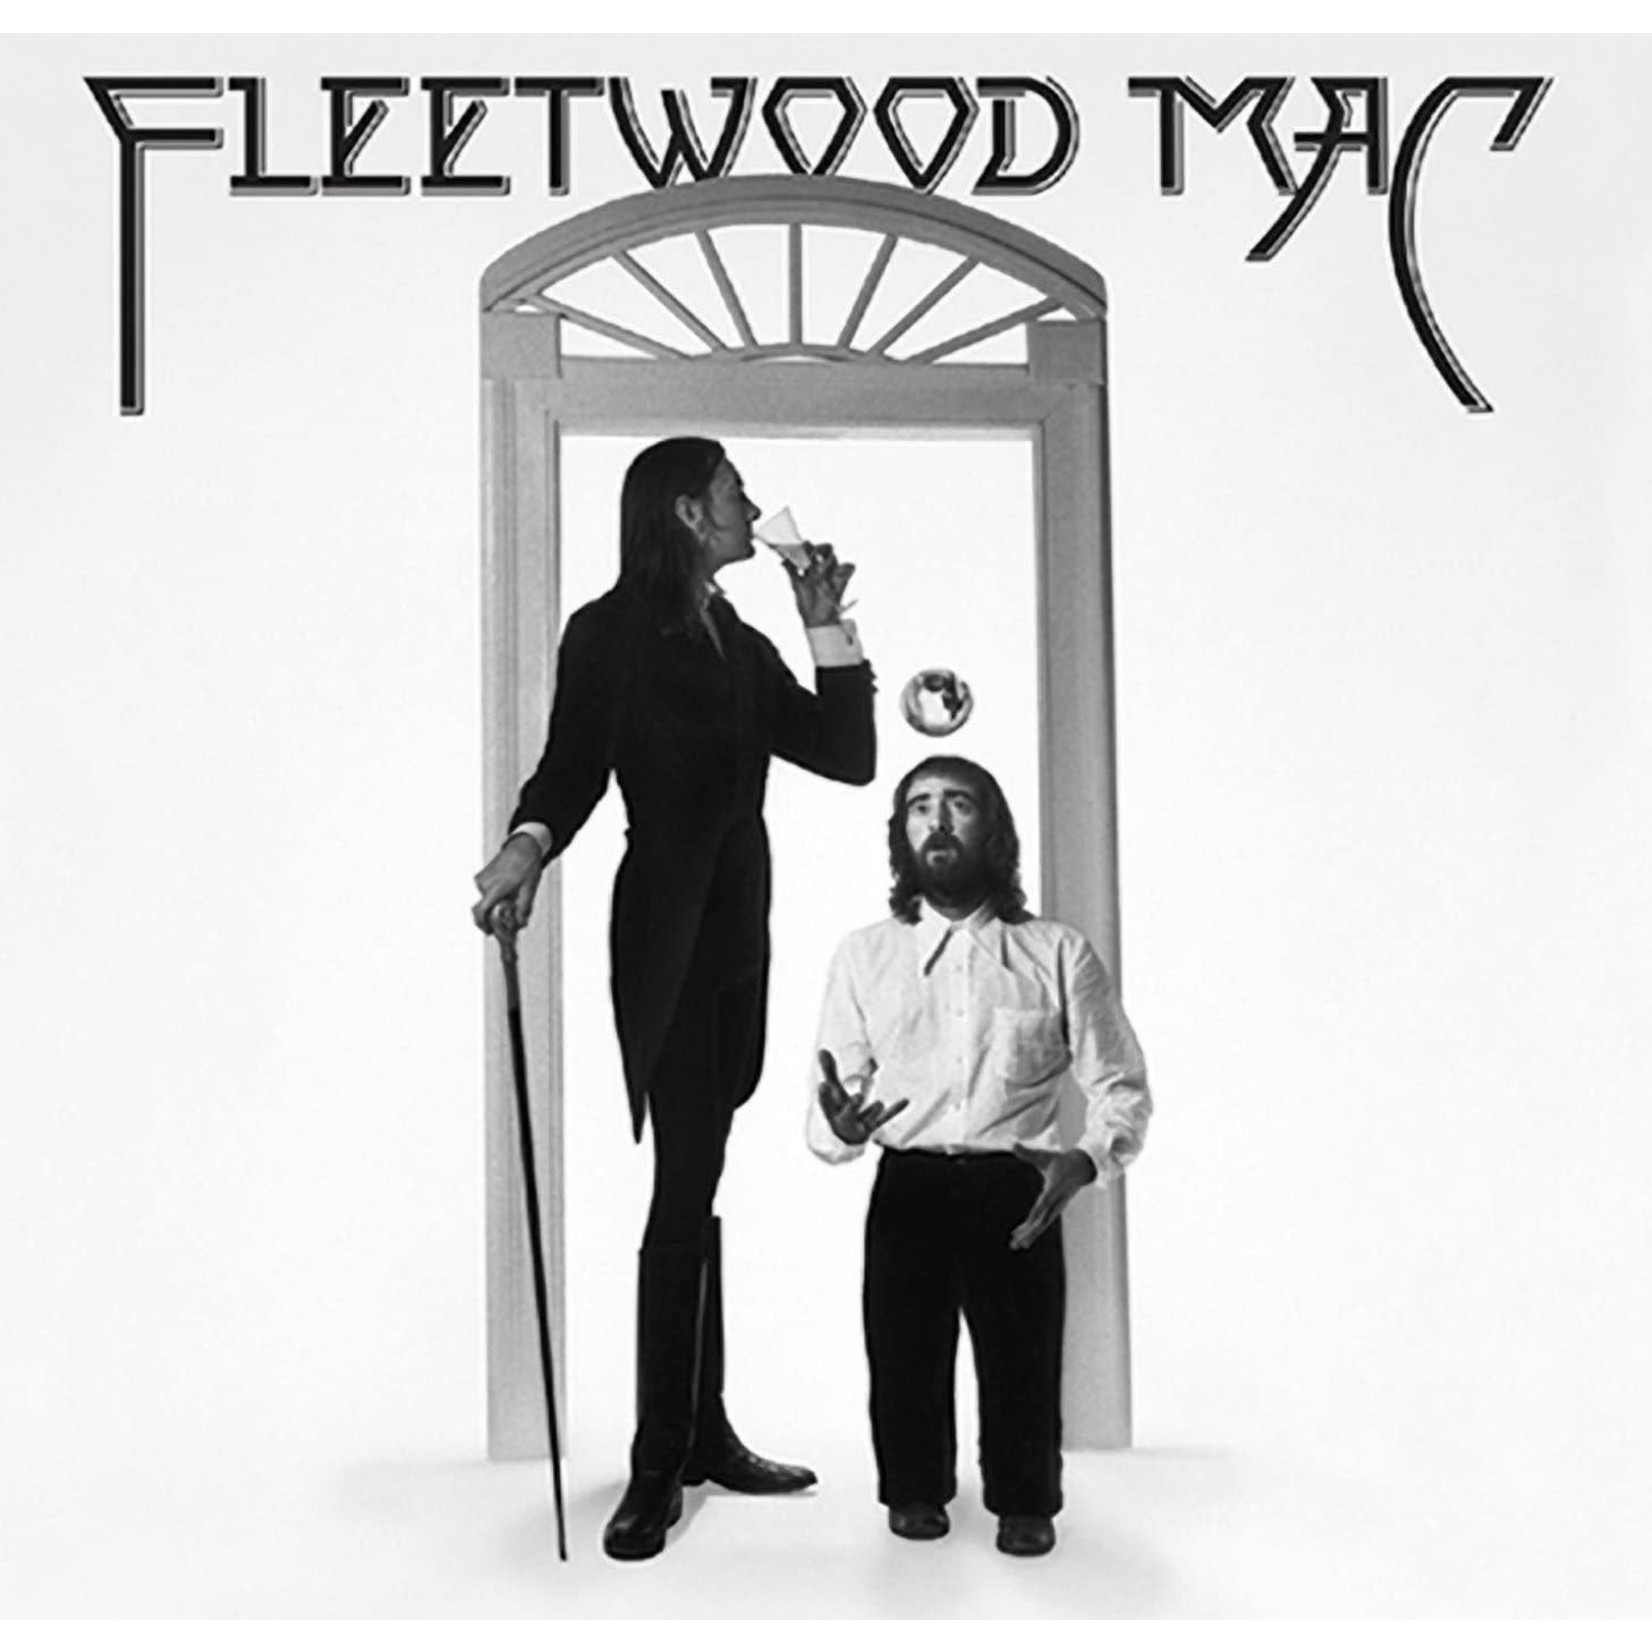 [Vintage] Fleetwood Mac: self-titled (1975 album, with poster)